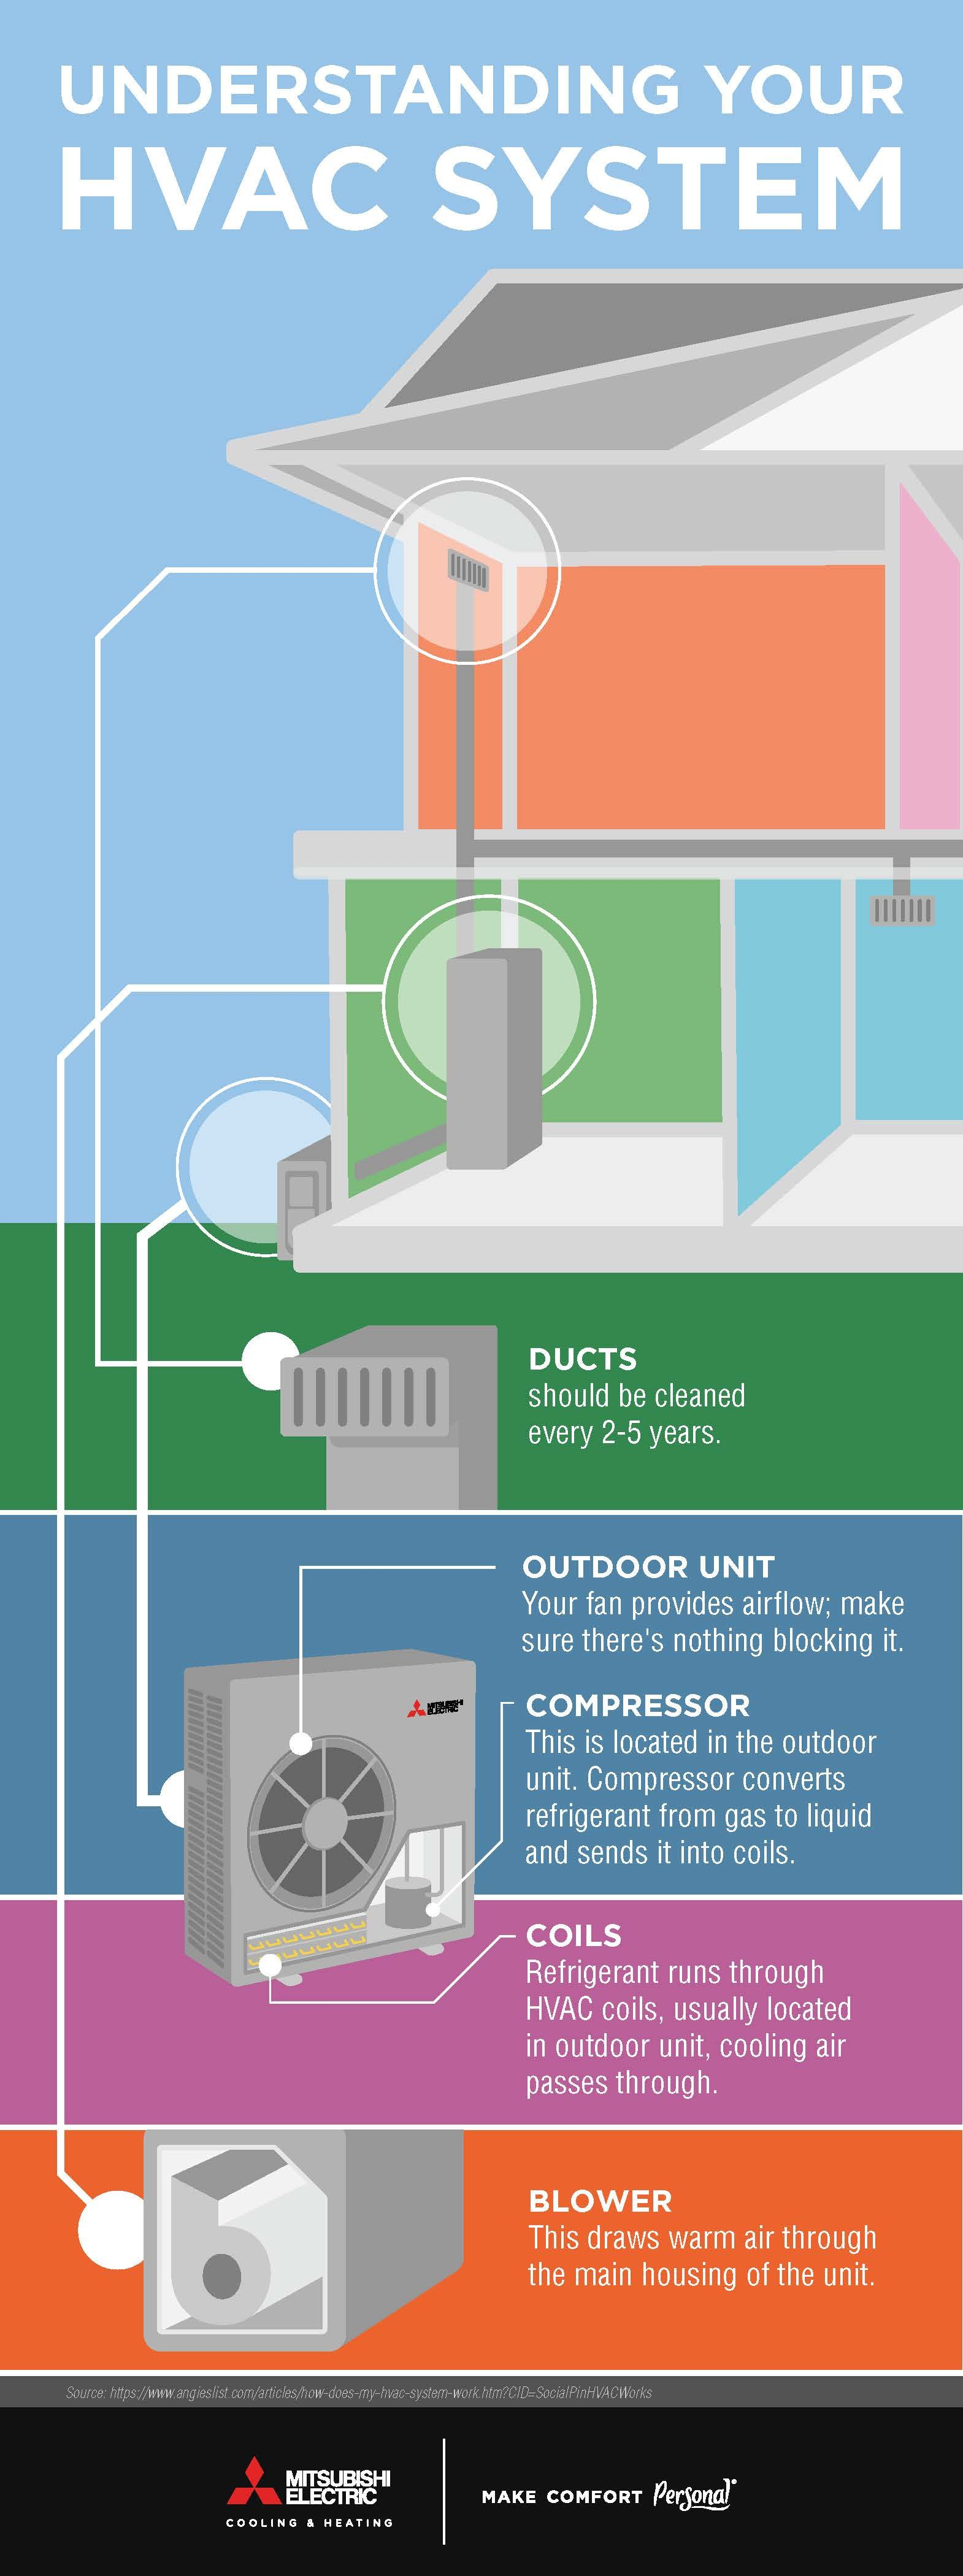 medium resolution of understanding your hvac system will help you decide what system works for your home and will better prepare you to talk with a contractor